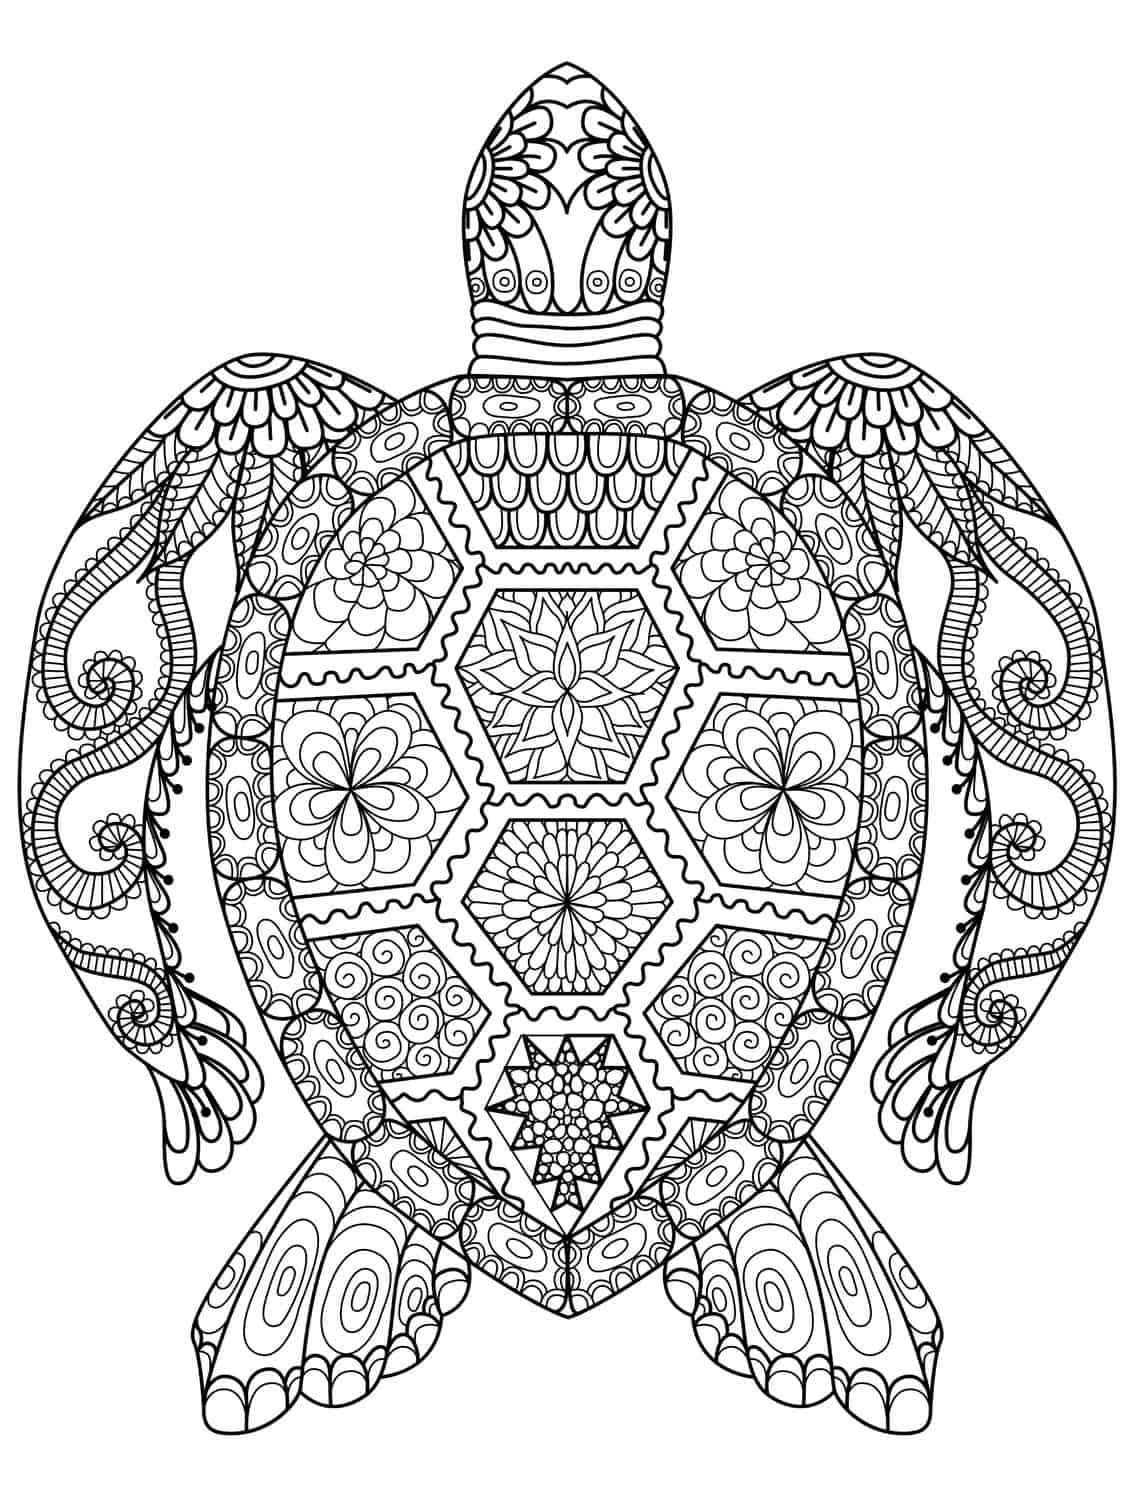 turtle pictures to color turtle pictures to color color pictures turtle to